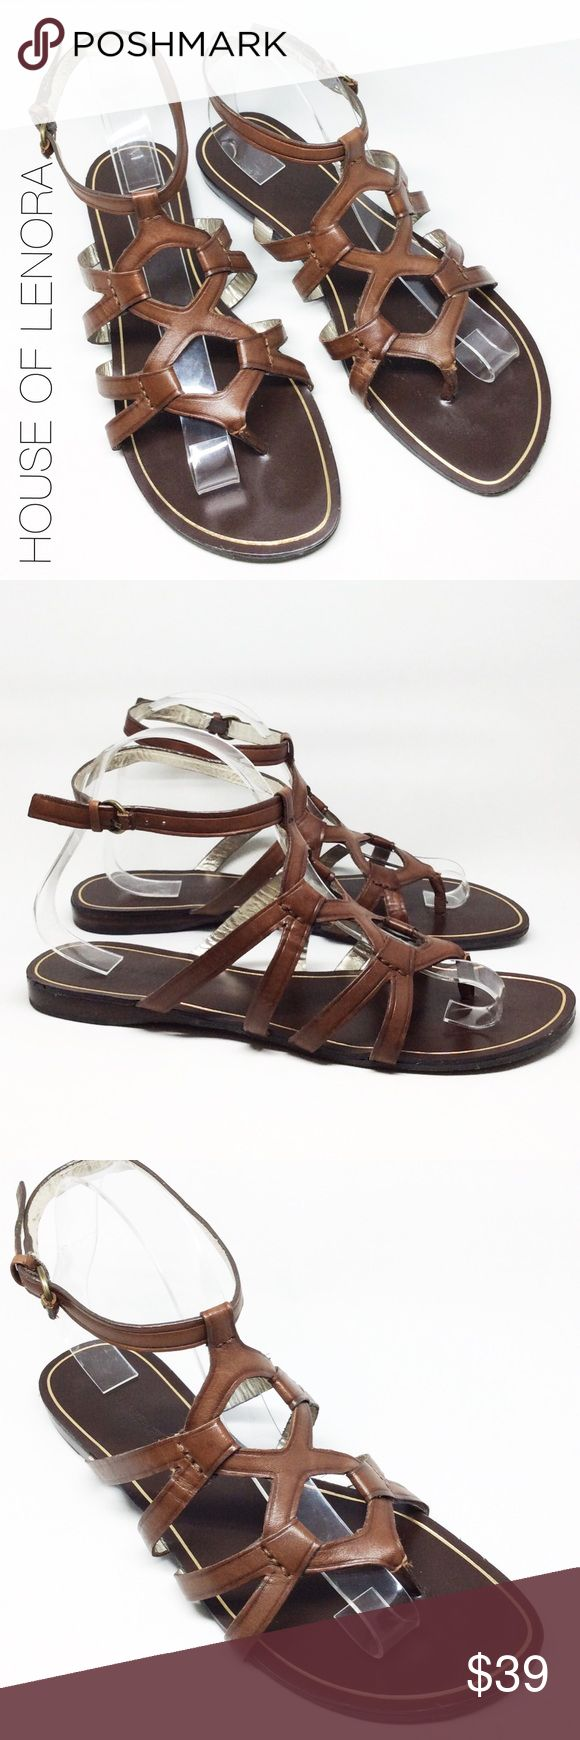 BANANA REPUBLIC Gladiator Sandal Very cute brown leather gladiator sandal with circle vamp and ankle strap. Condition: New, these shoes look to have never been worn. Banana Republic Shoes Sandals